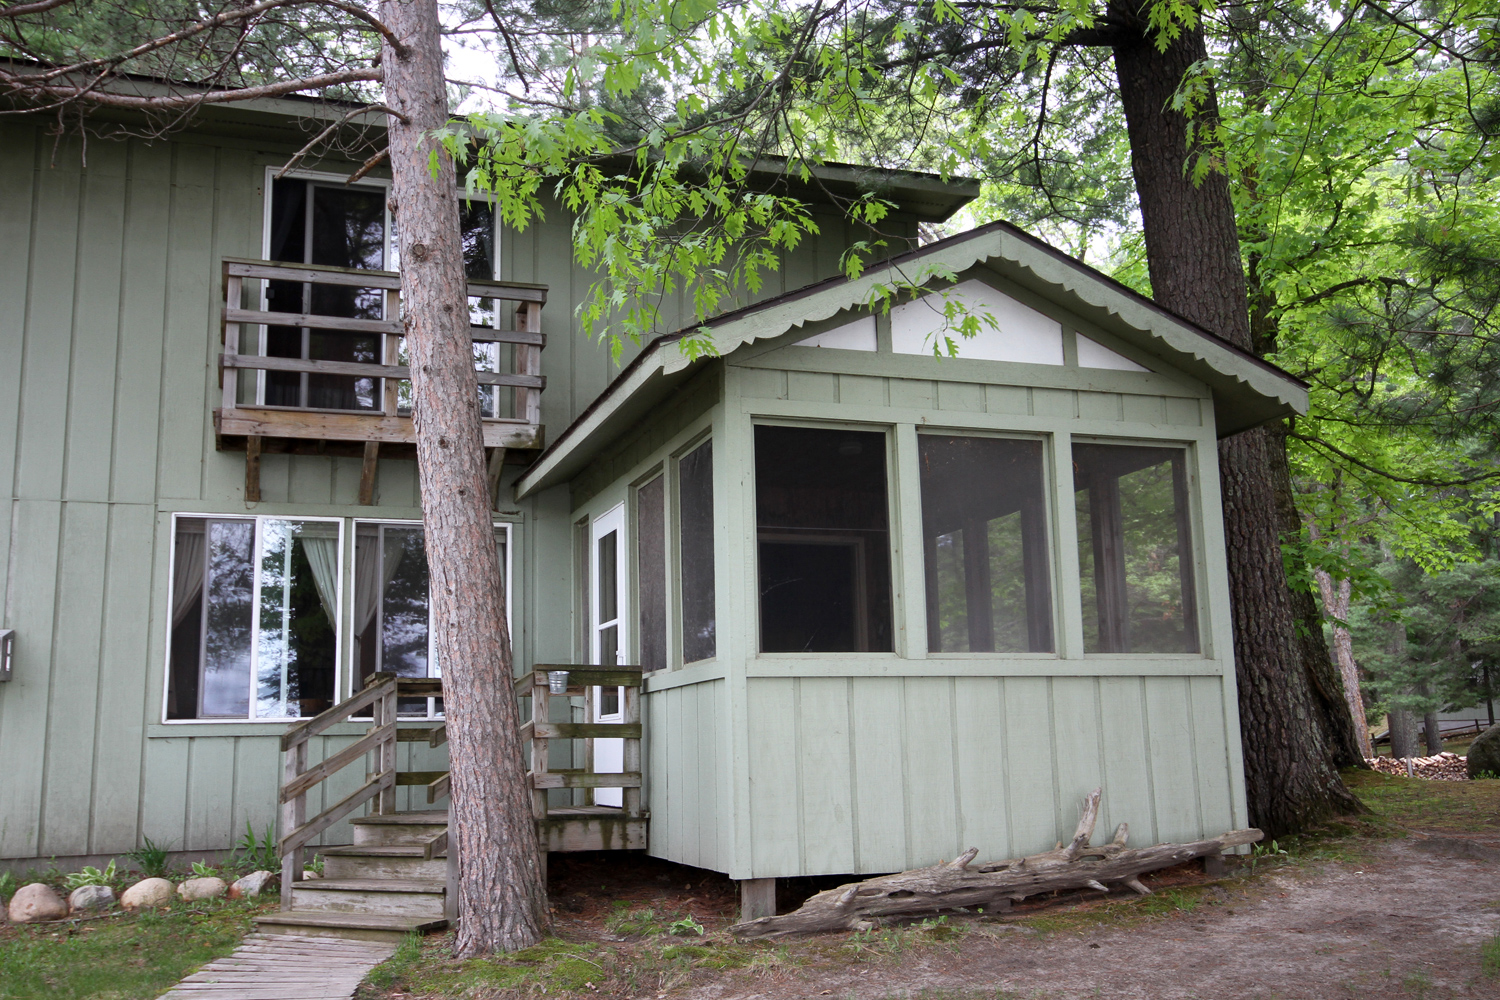 Stardust - Four Bedroom Lakeside Cabin Duplex with Optional Walk-Through to Twilight